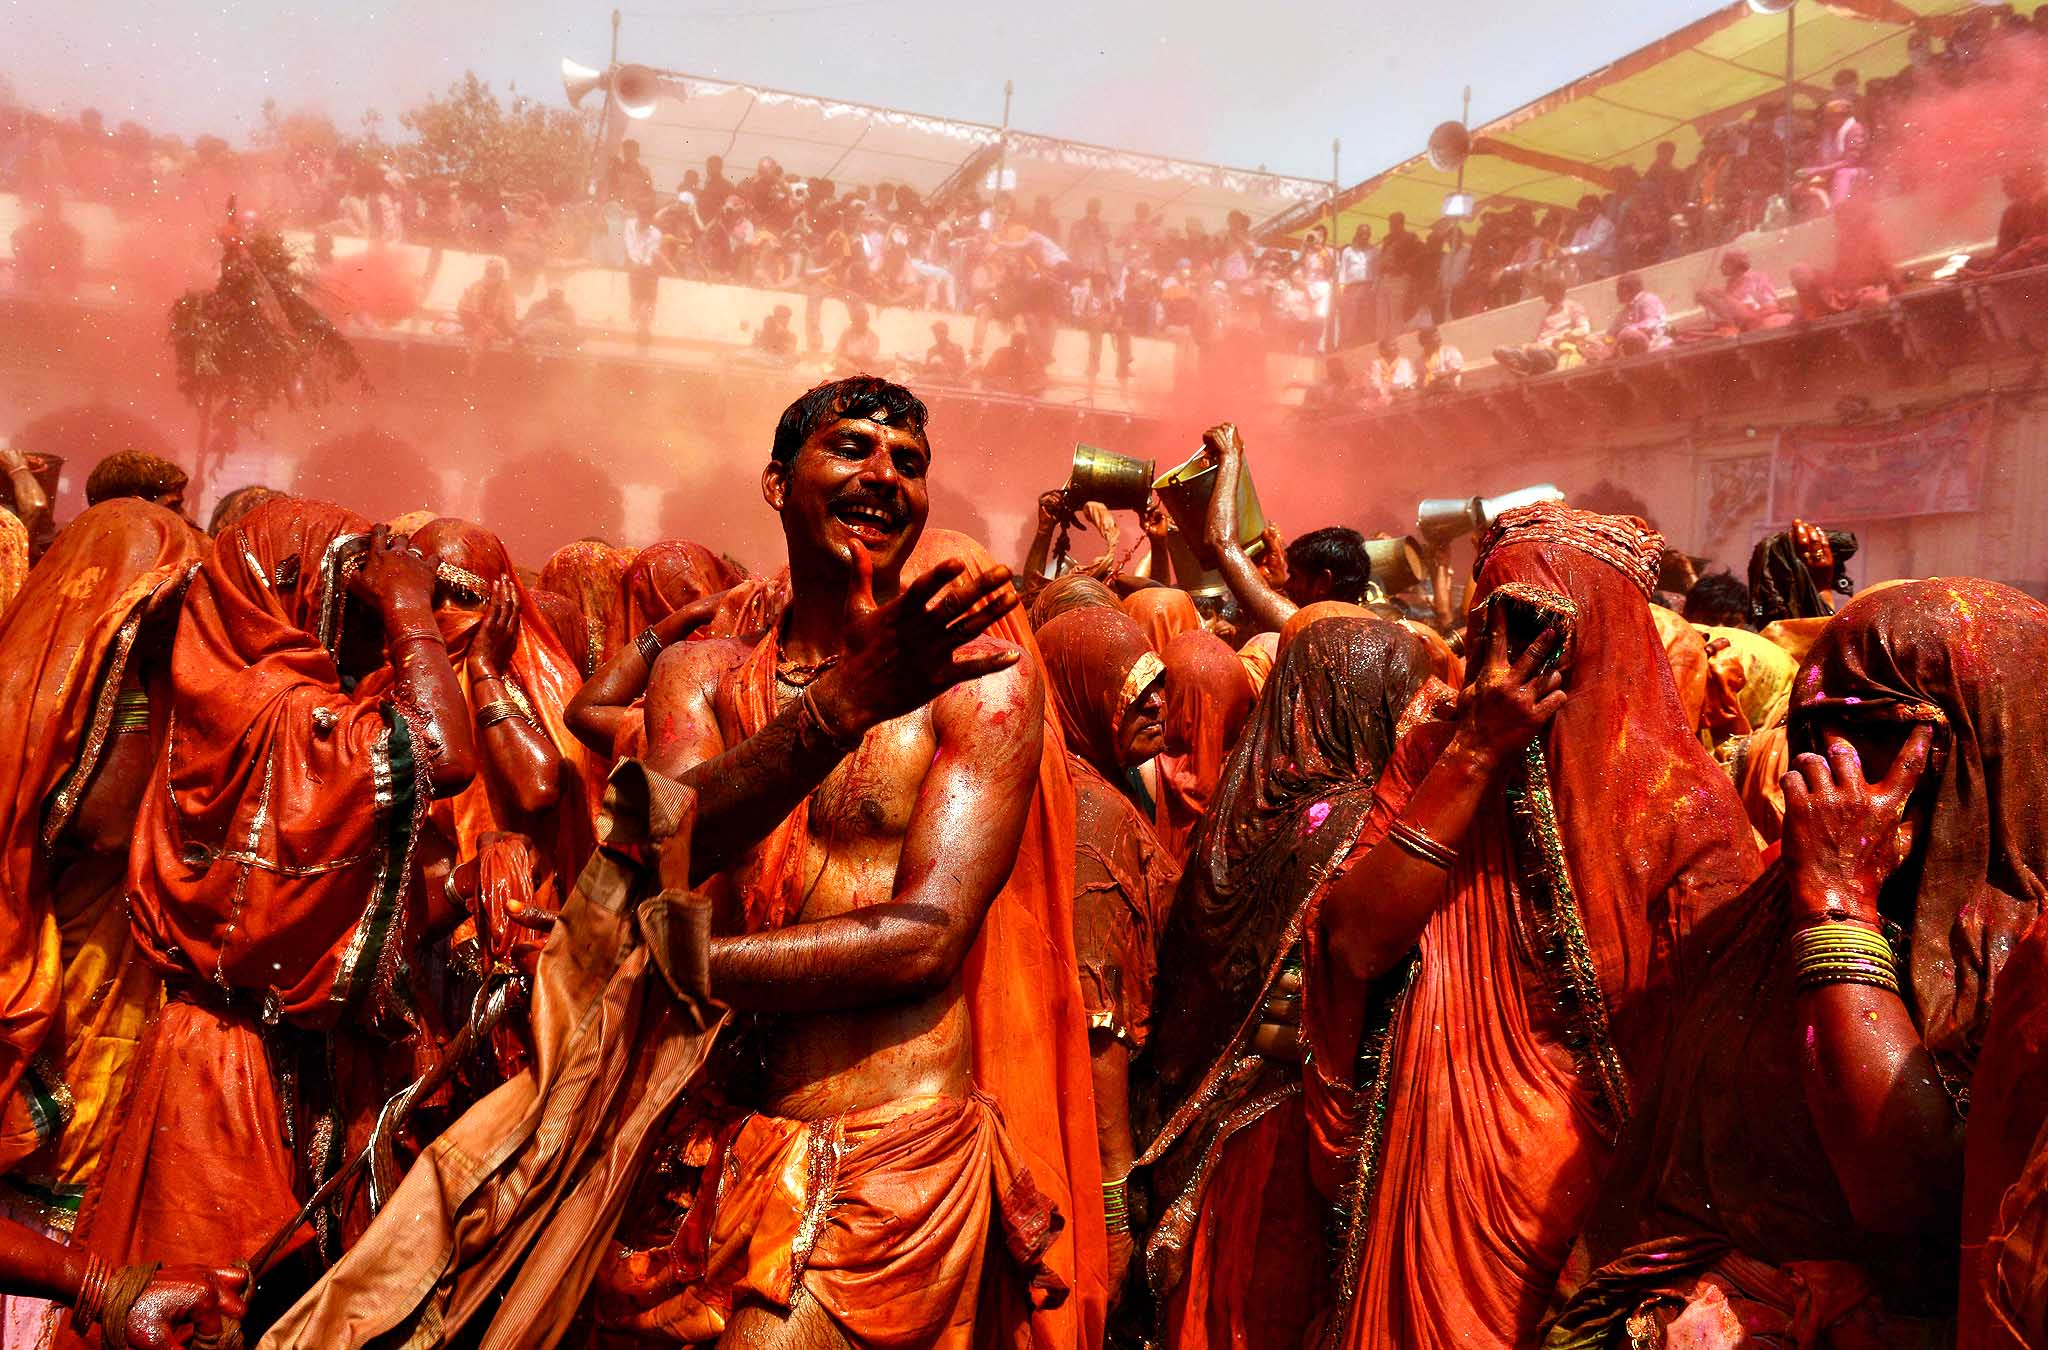 Indian revellers take part in the game of 'Huranga' at The Dauji Temple in Mathura, some 100kms south of New Delhi on March 18, 2014. 'Huranga' is a game played between men and women a day after Holi, the festival of colours, during which men drench women with liquid colours and women tear off the clothes of the men.